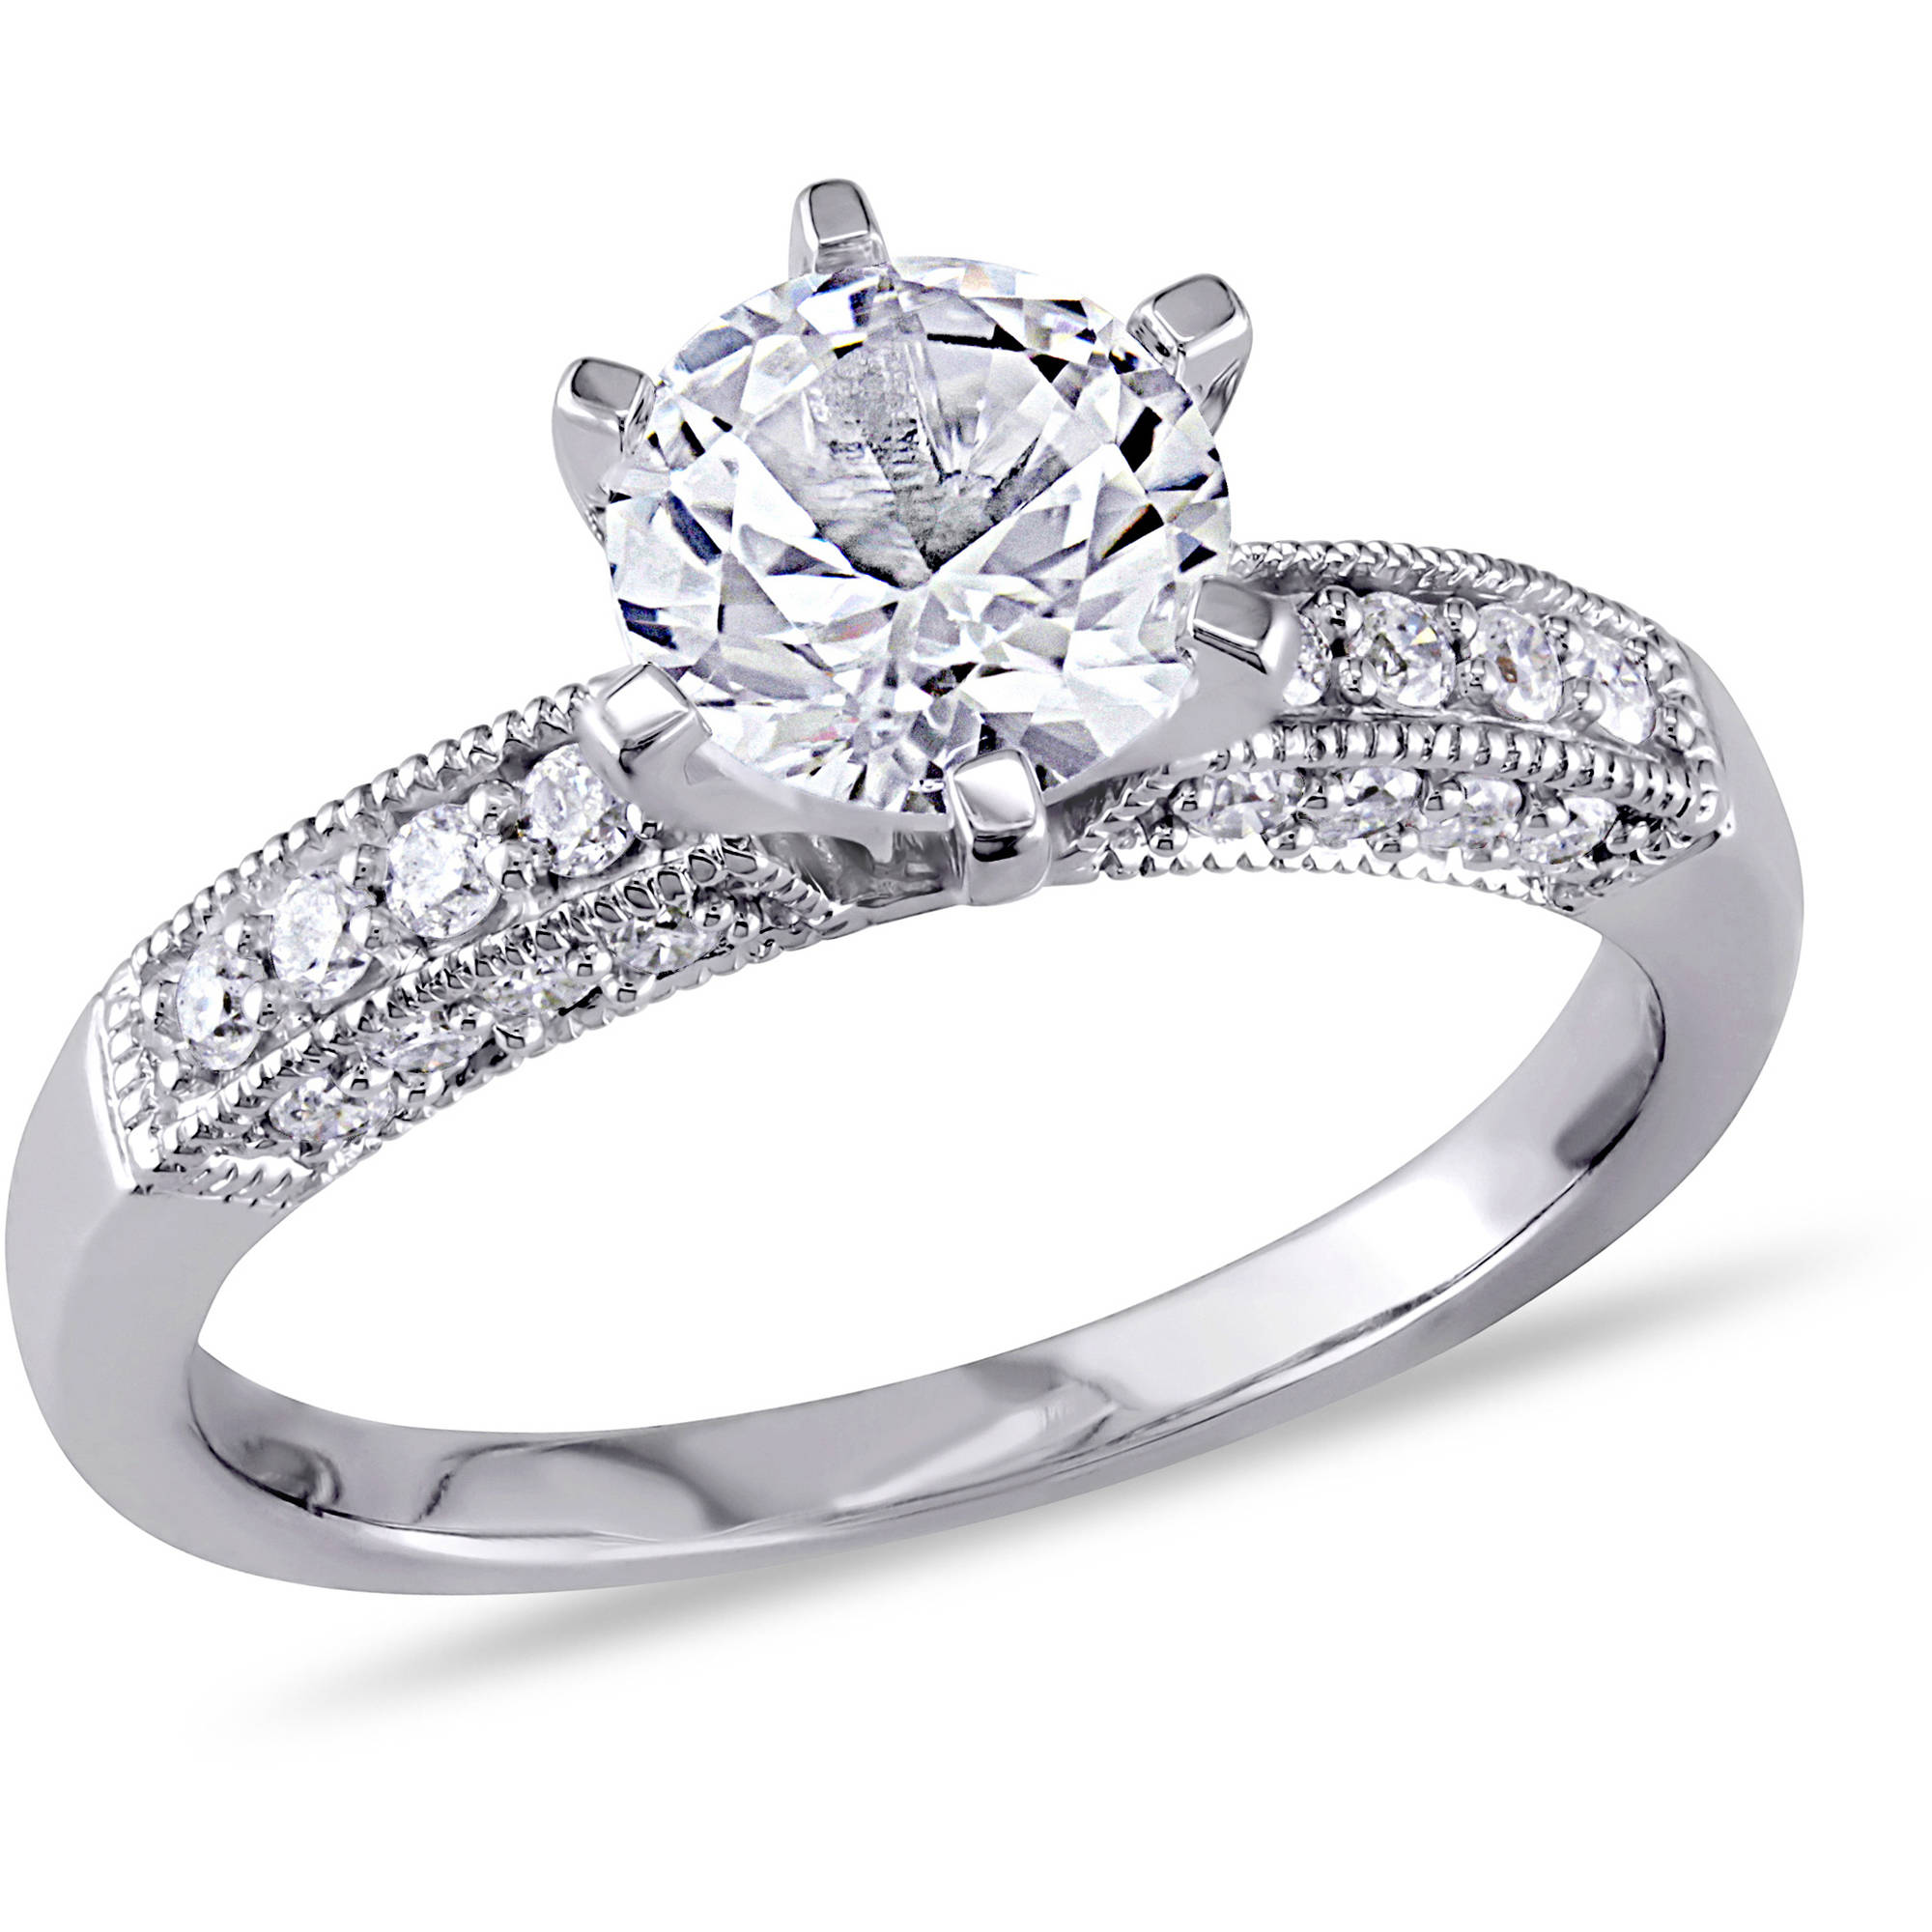 Miabella 1-3/8 Carat T.G.W. Created White Sapphire and 1/4 Carat T.W. Diamond 10kt White Gold Engagement Ring